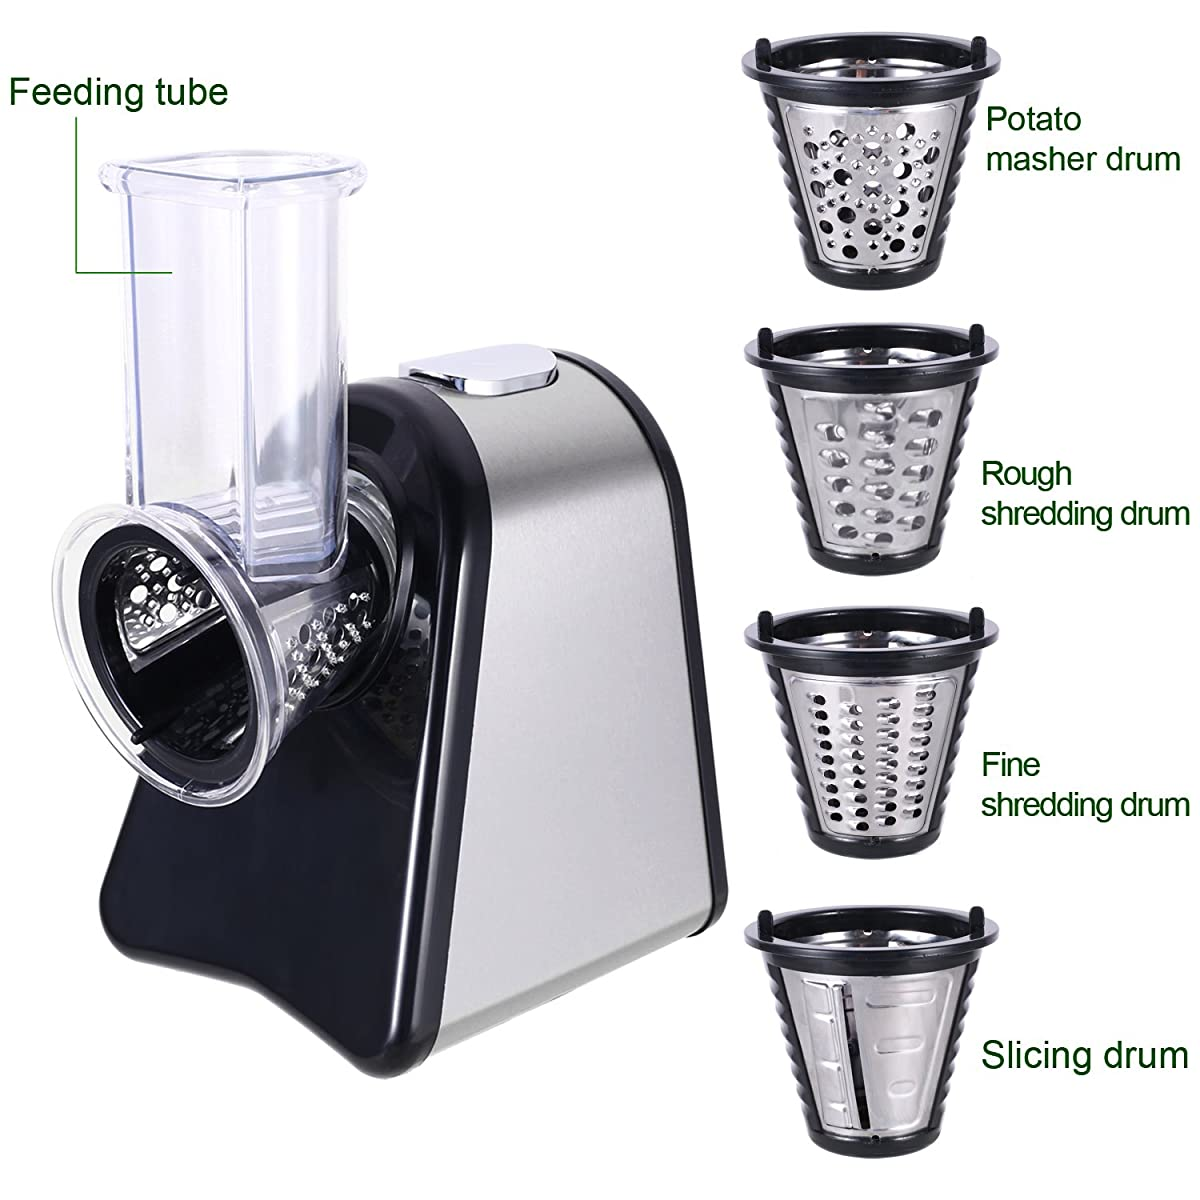 Professional Salad Shooter Electric Slicer/Shredder with One-Touch Control and 5 Free Attachments for fruits, vegetables, and cheeses (US PLUG)